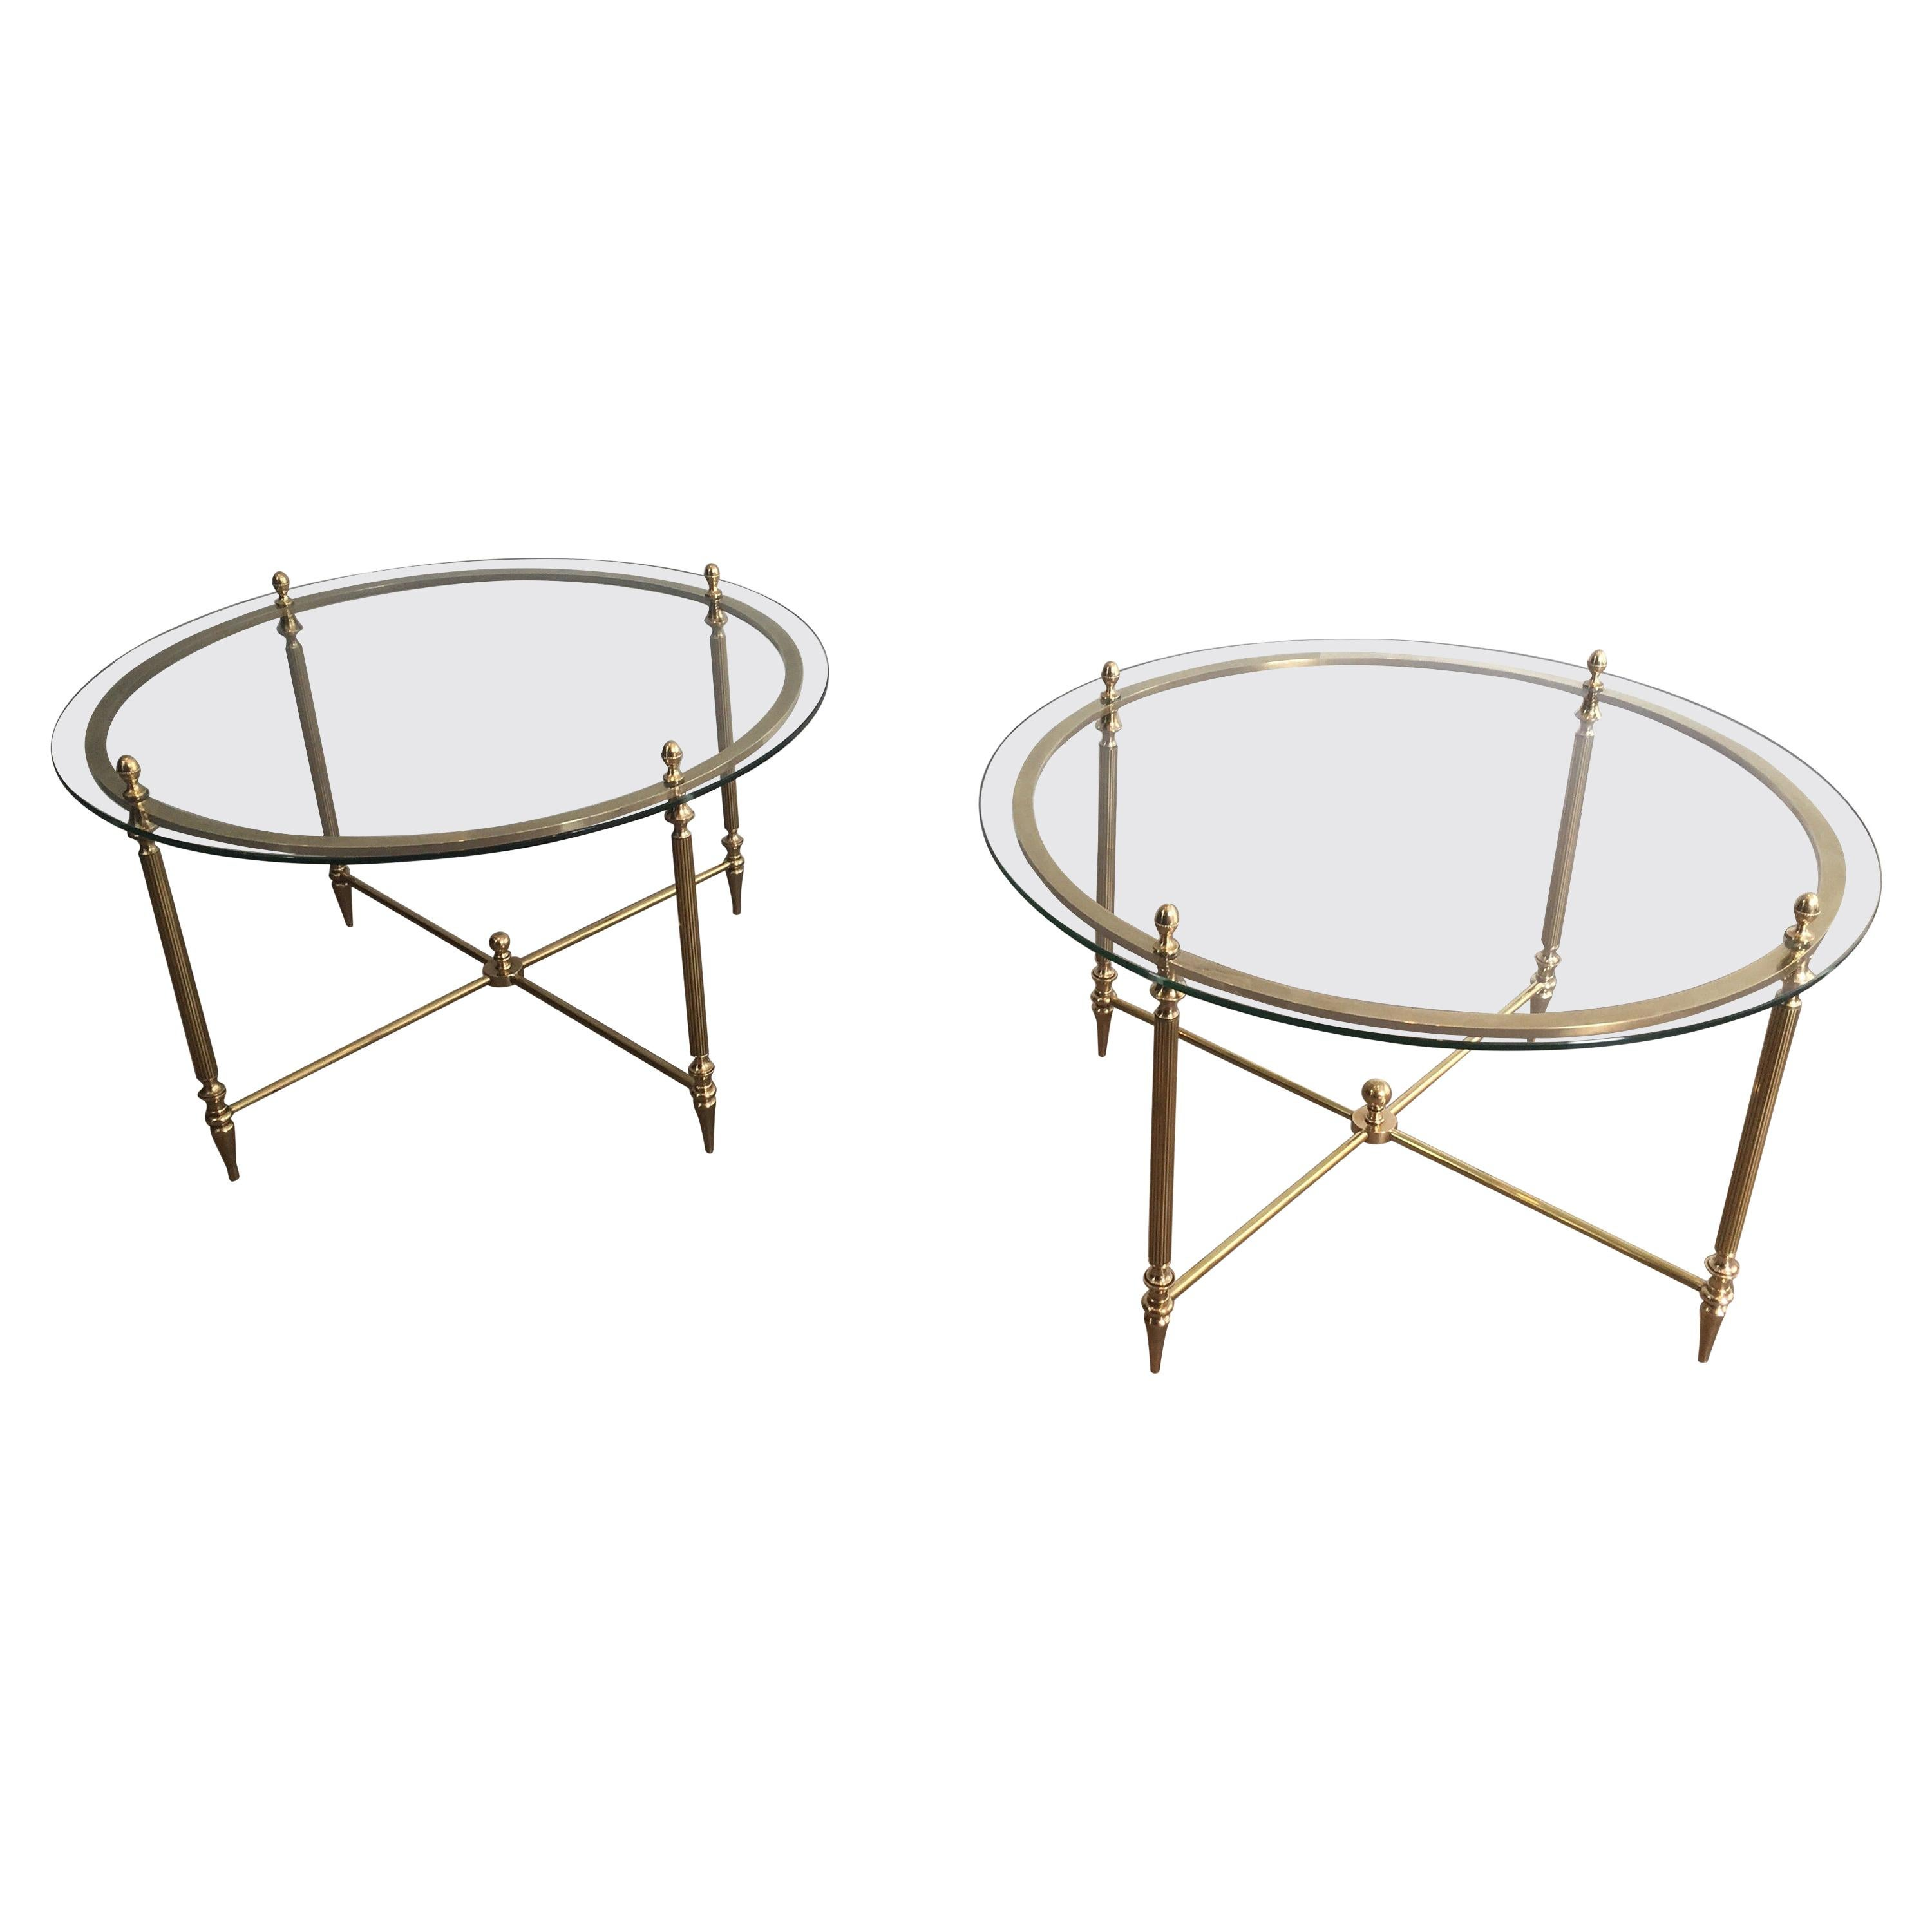 Maison Bagués, Rare Pair of Neoclassical Round Brass and Glass Side Tables